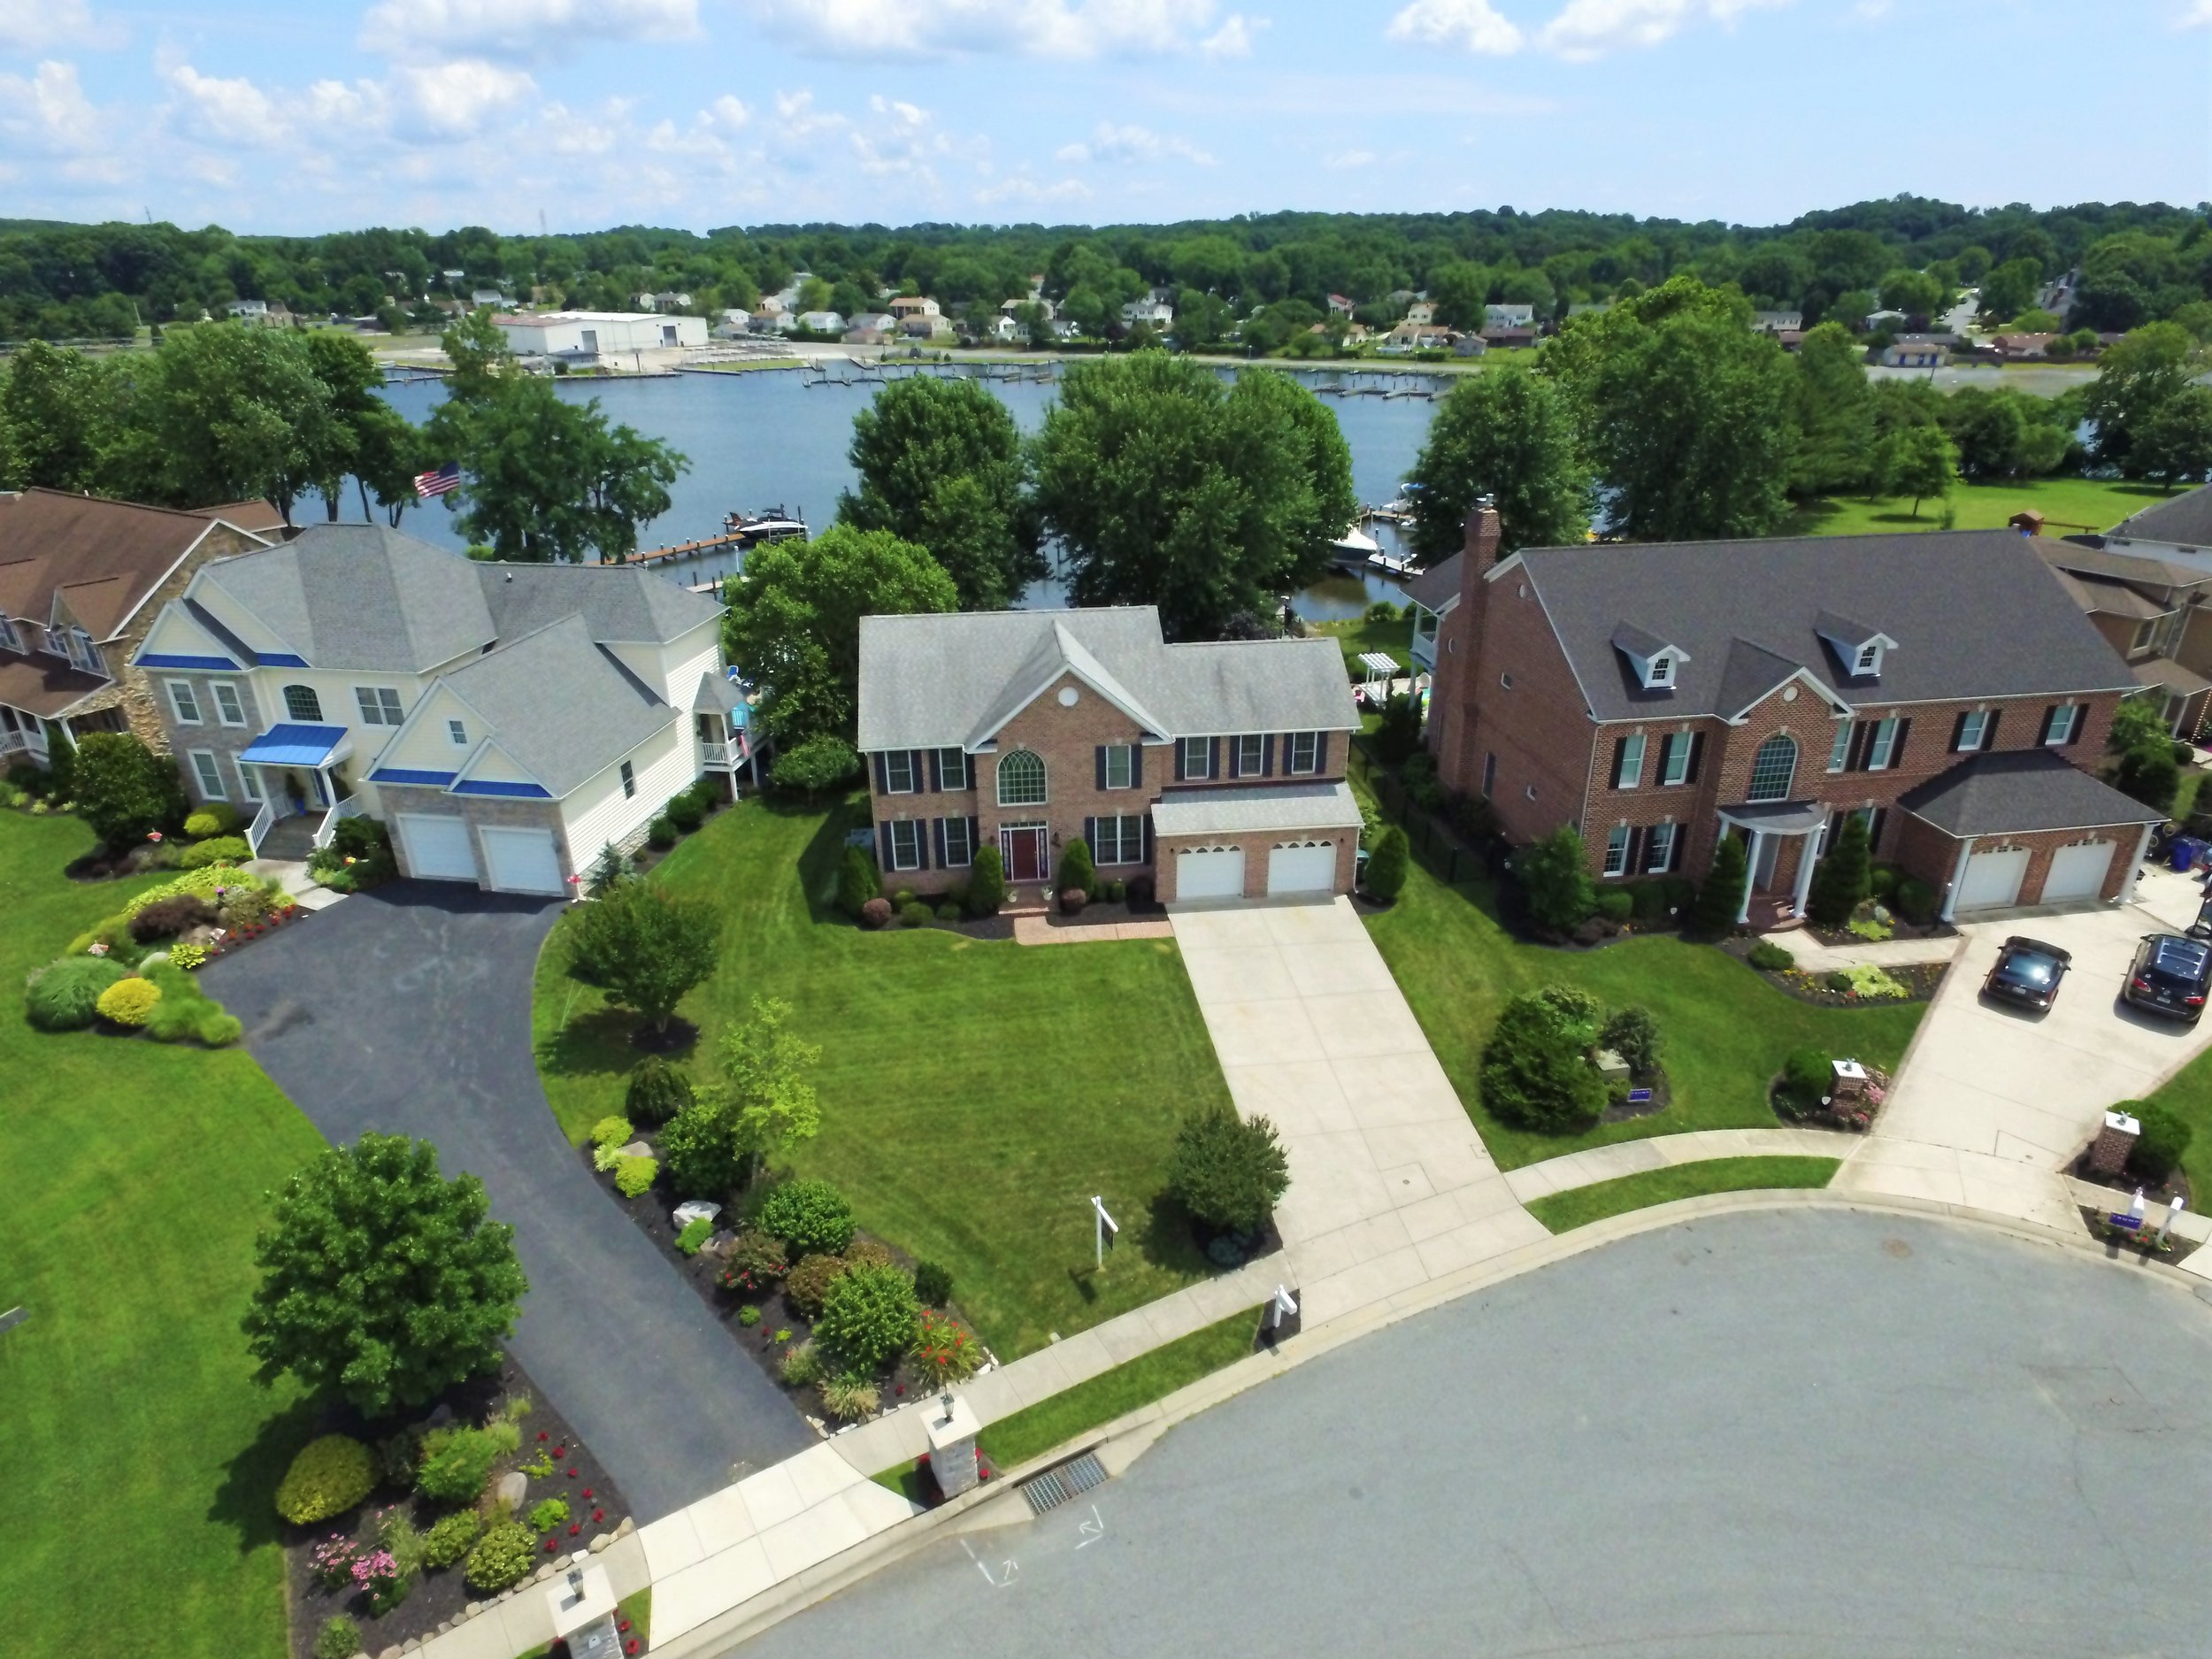 Real Estate photographic image by drone. Waterfront property in Maryland.